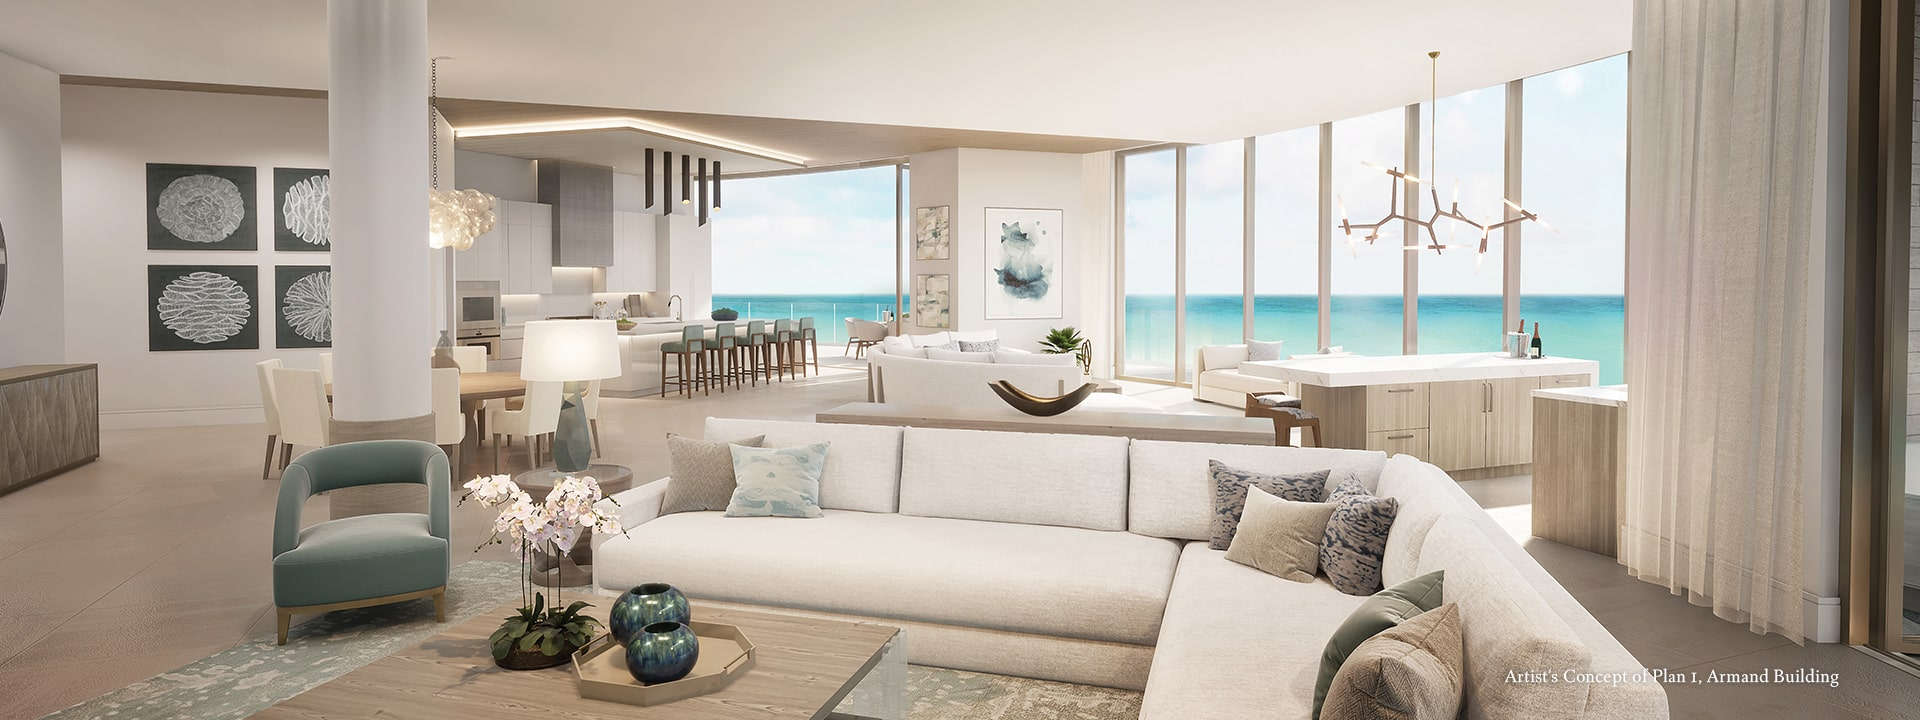 Armand Plan 1 Living Room Closeup Rendering at The St Regis Longboat Key Resort